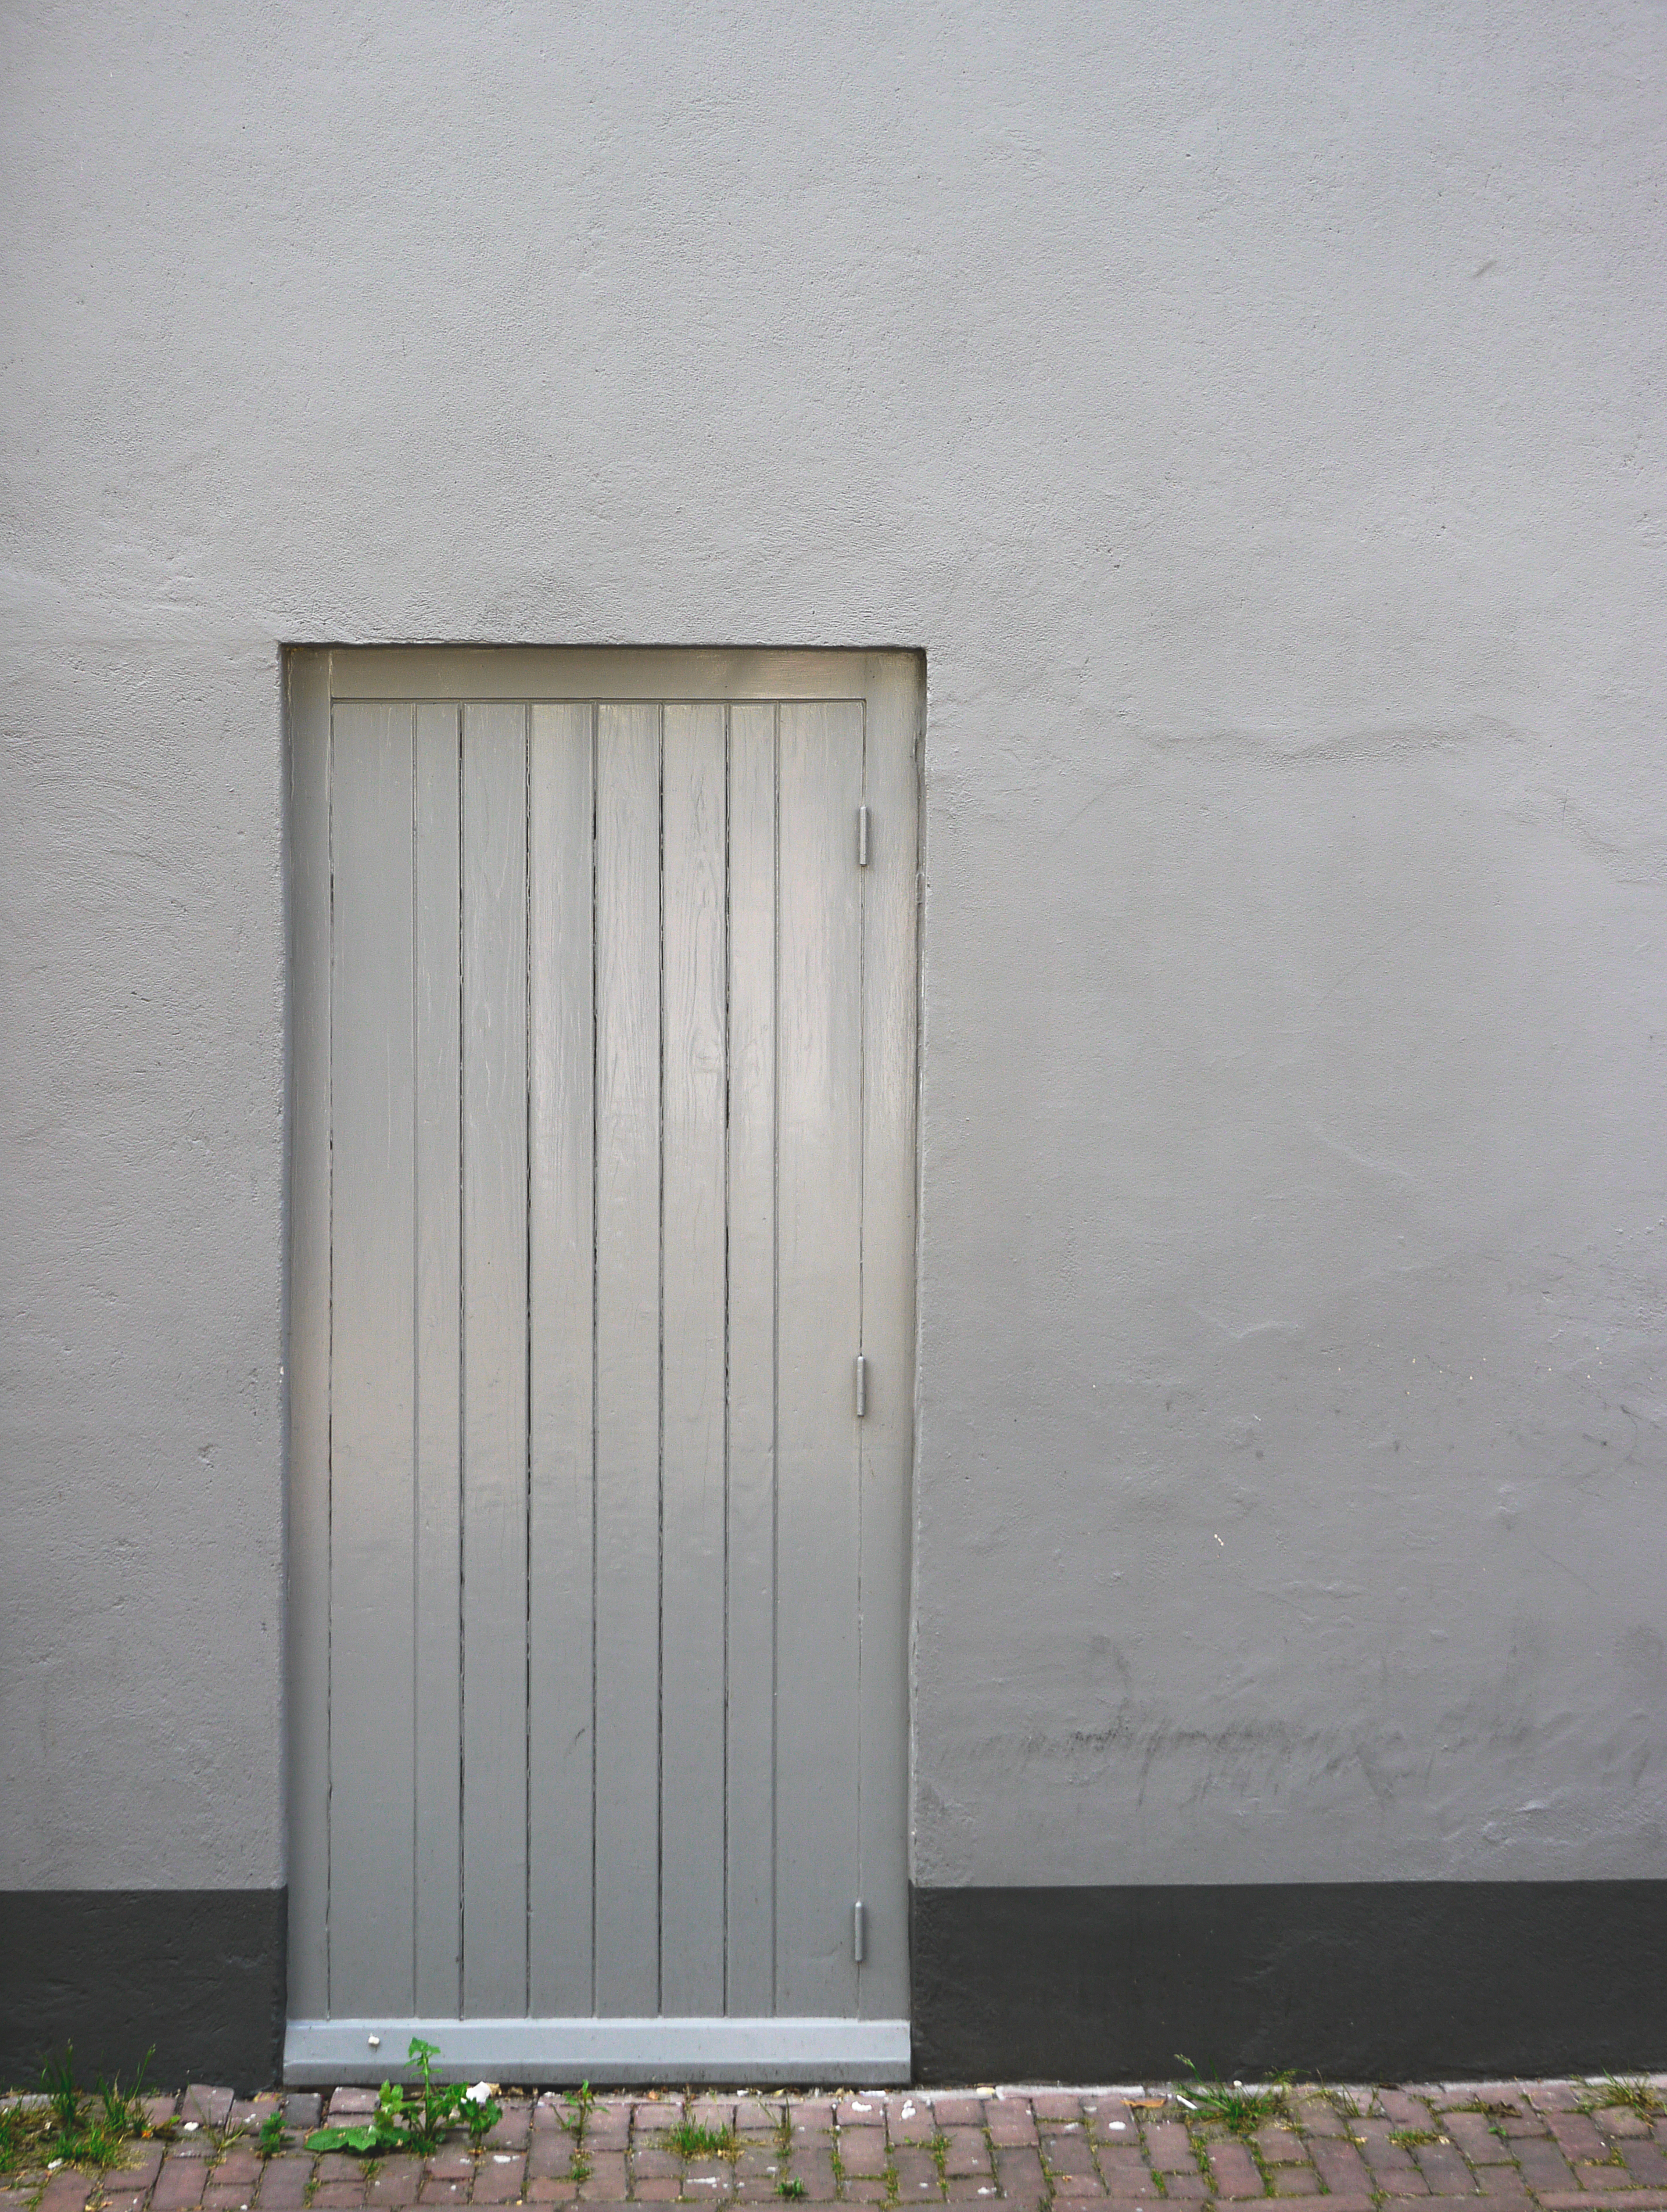 Thursday doors silver door & Thursday Doors \u2013 Doors out of place | WitchWithaView | Photography